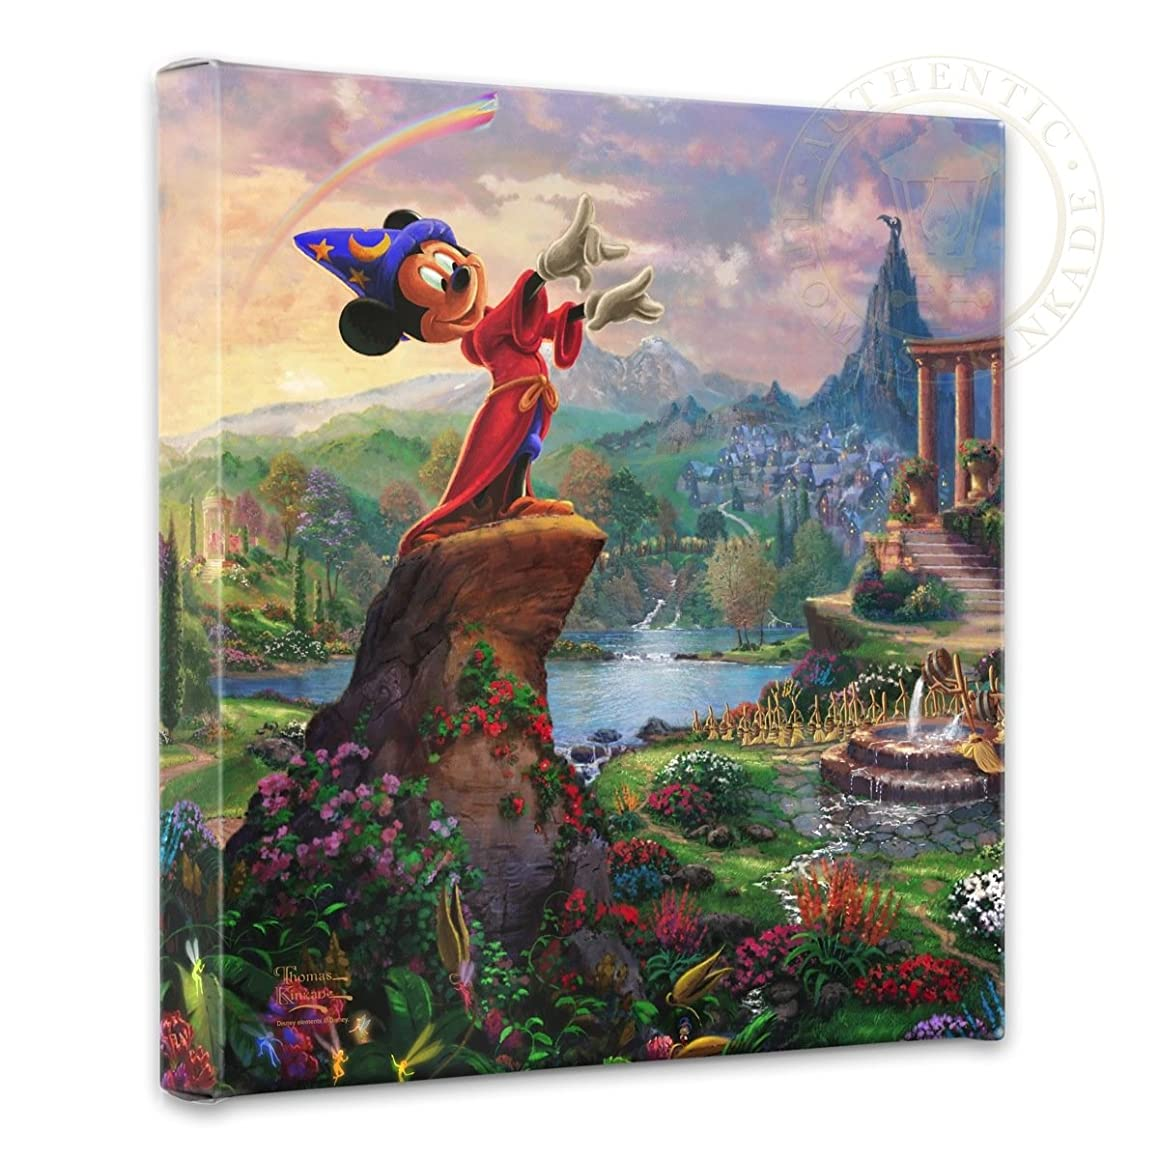 Thomas Kinkade Studios Fantasia 14x14 Gallery Wrapped Canvas